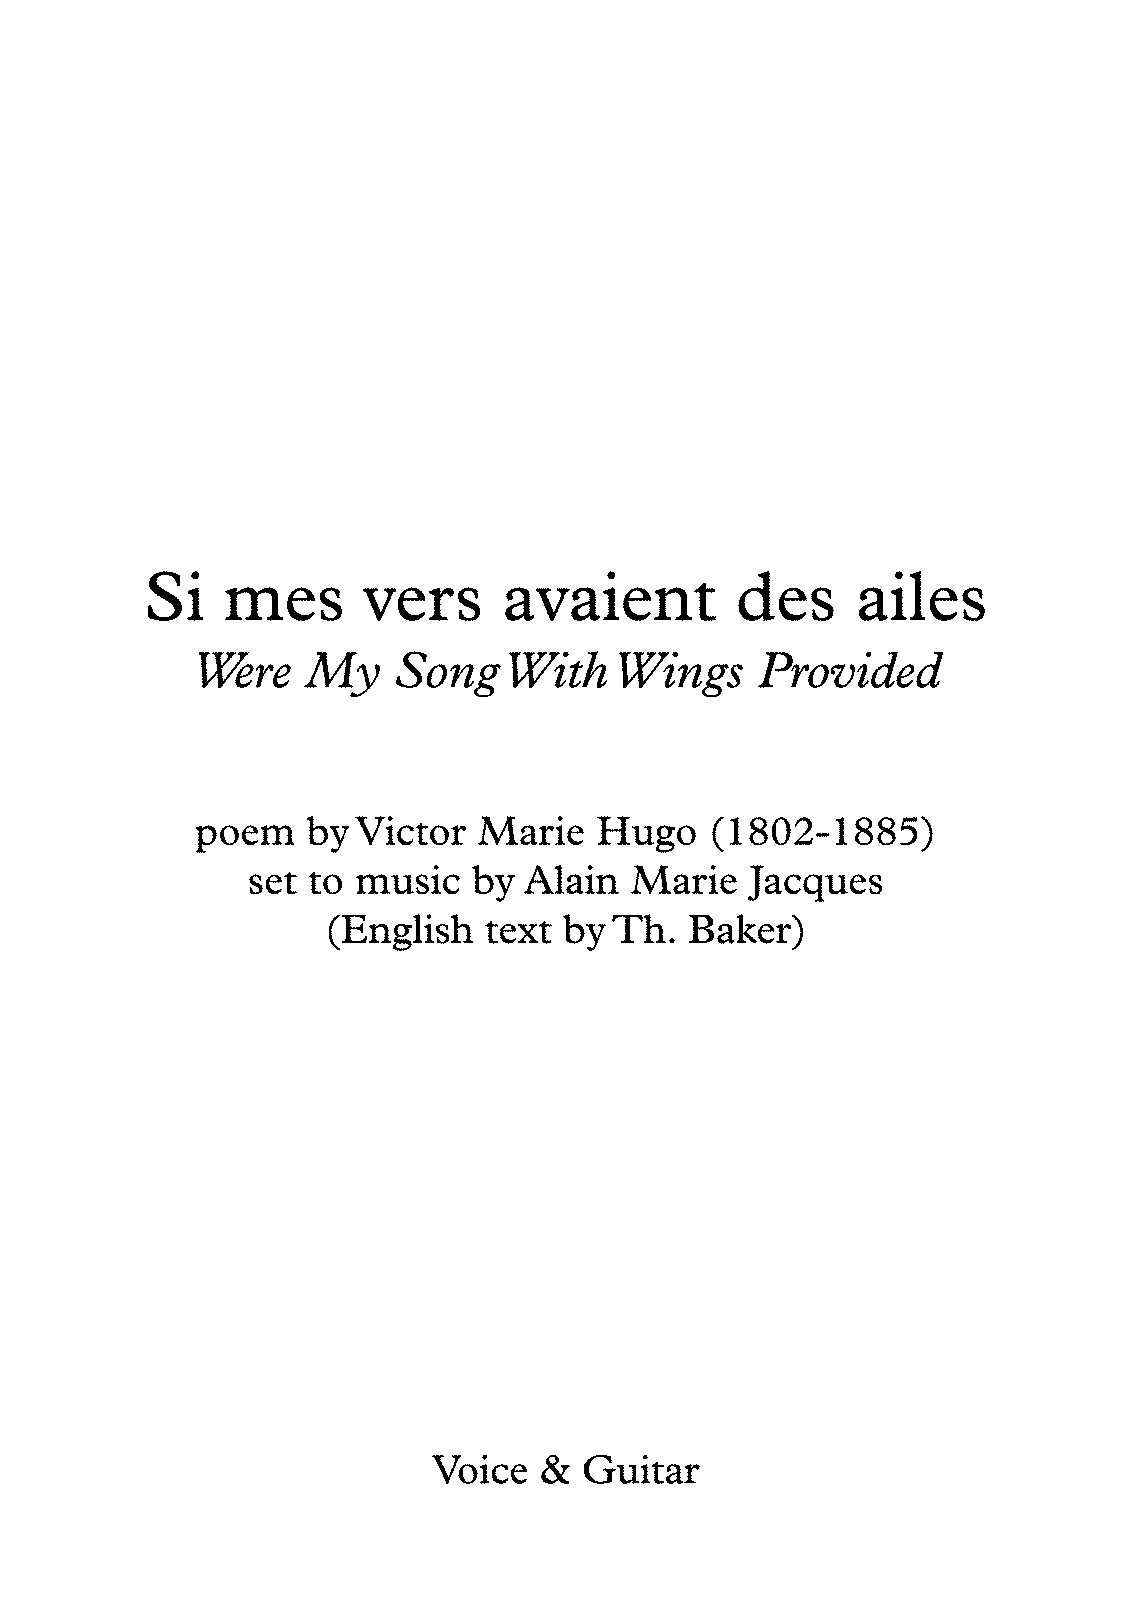 PMLP449668-Si mes vers avaient des ailes (Jacques - Victor Hugo) Guitar & English - last - Full Score.pdf